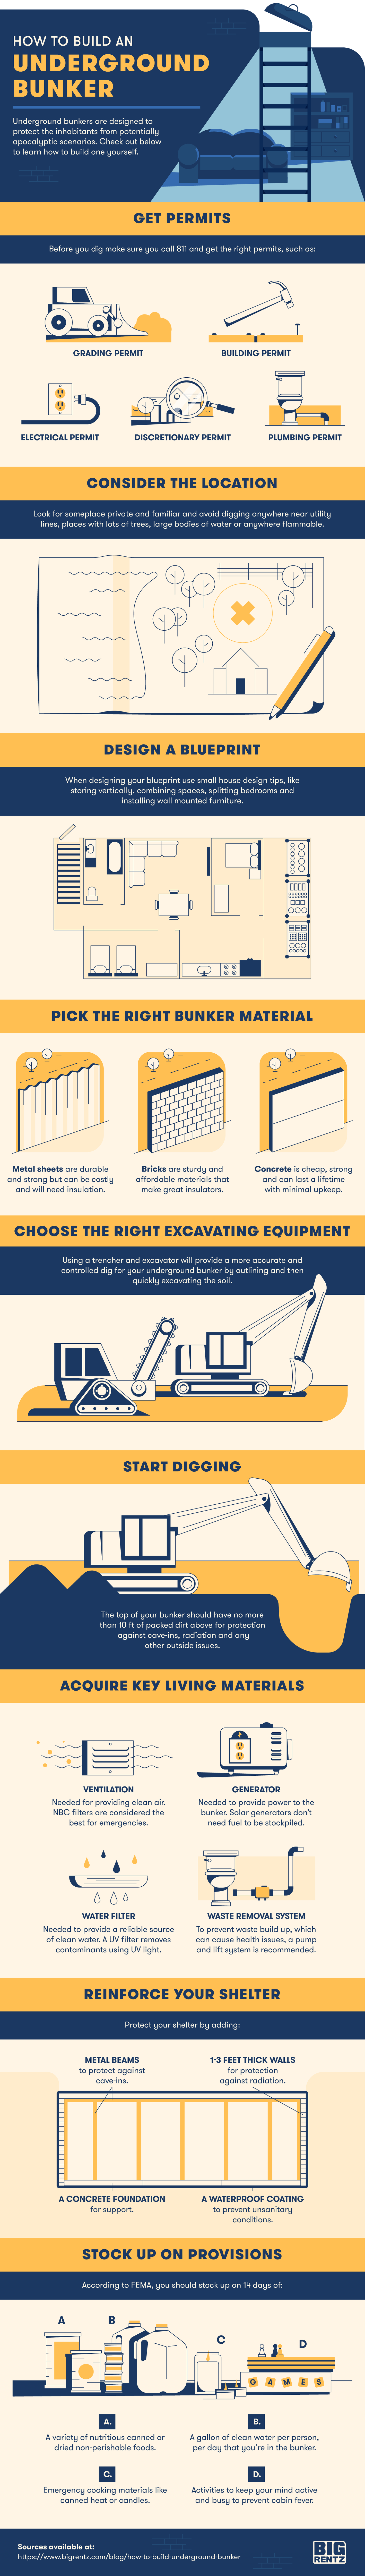 How to Build an Underground Bunker Infographic